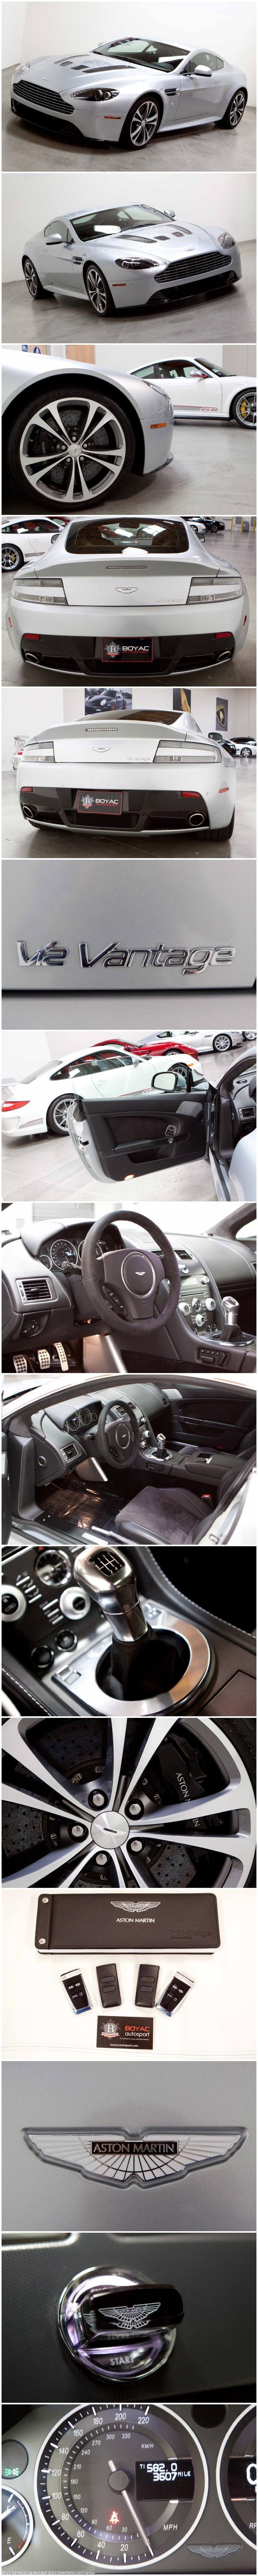 Aston Martin Vantage V12 This car, is my second dream car, the first is the Vanquish... Ahhh